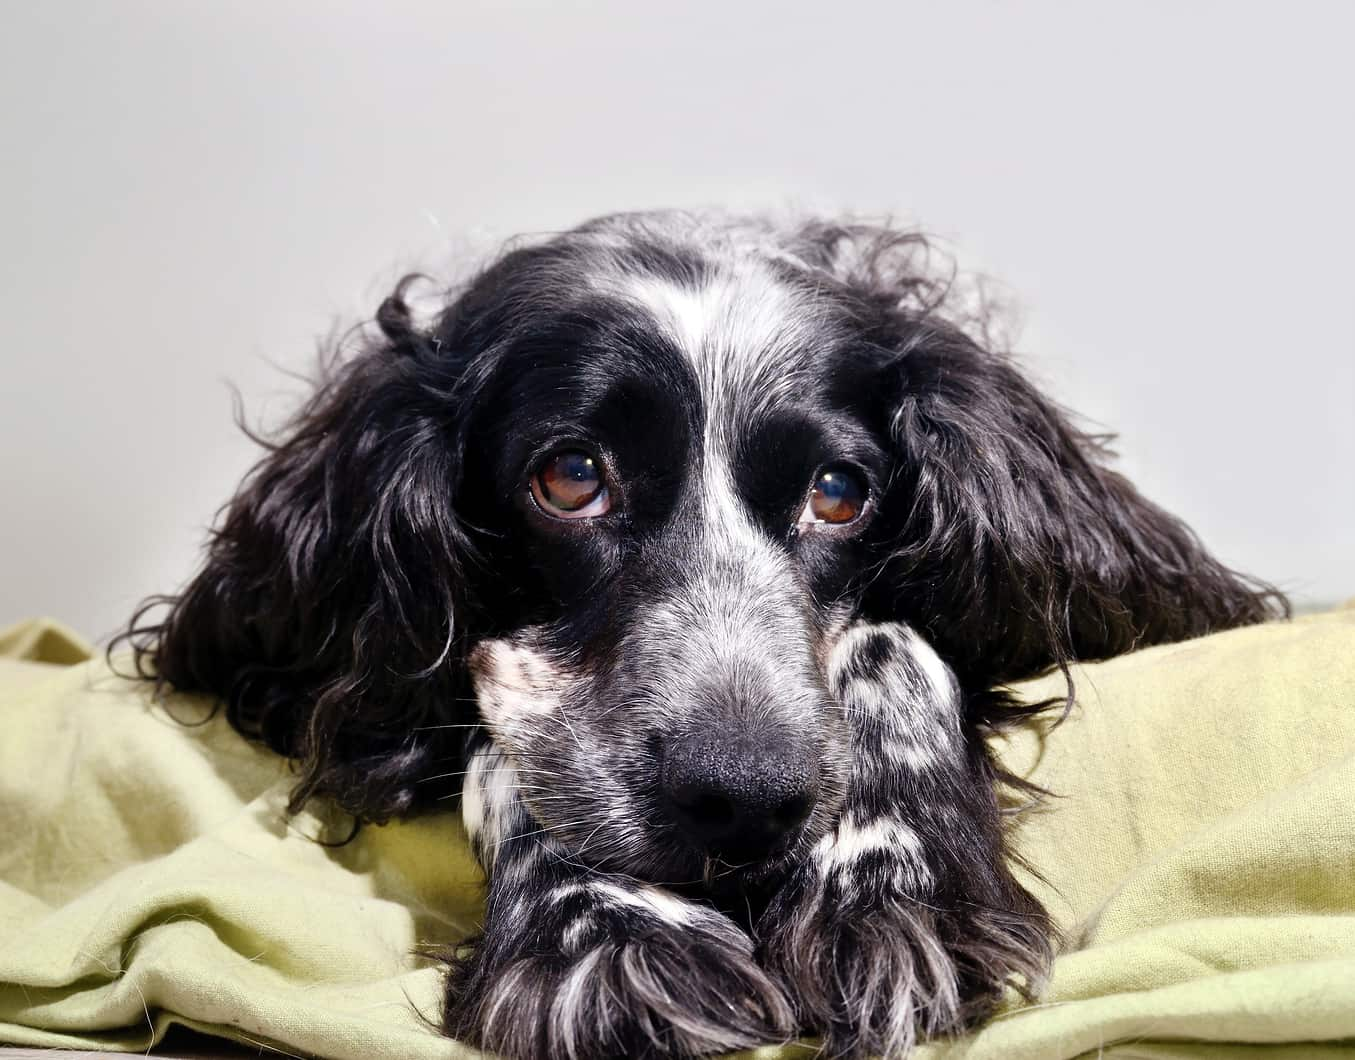 Sad English spaniel on a bed